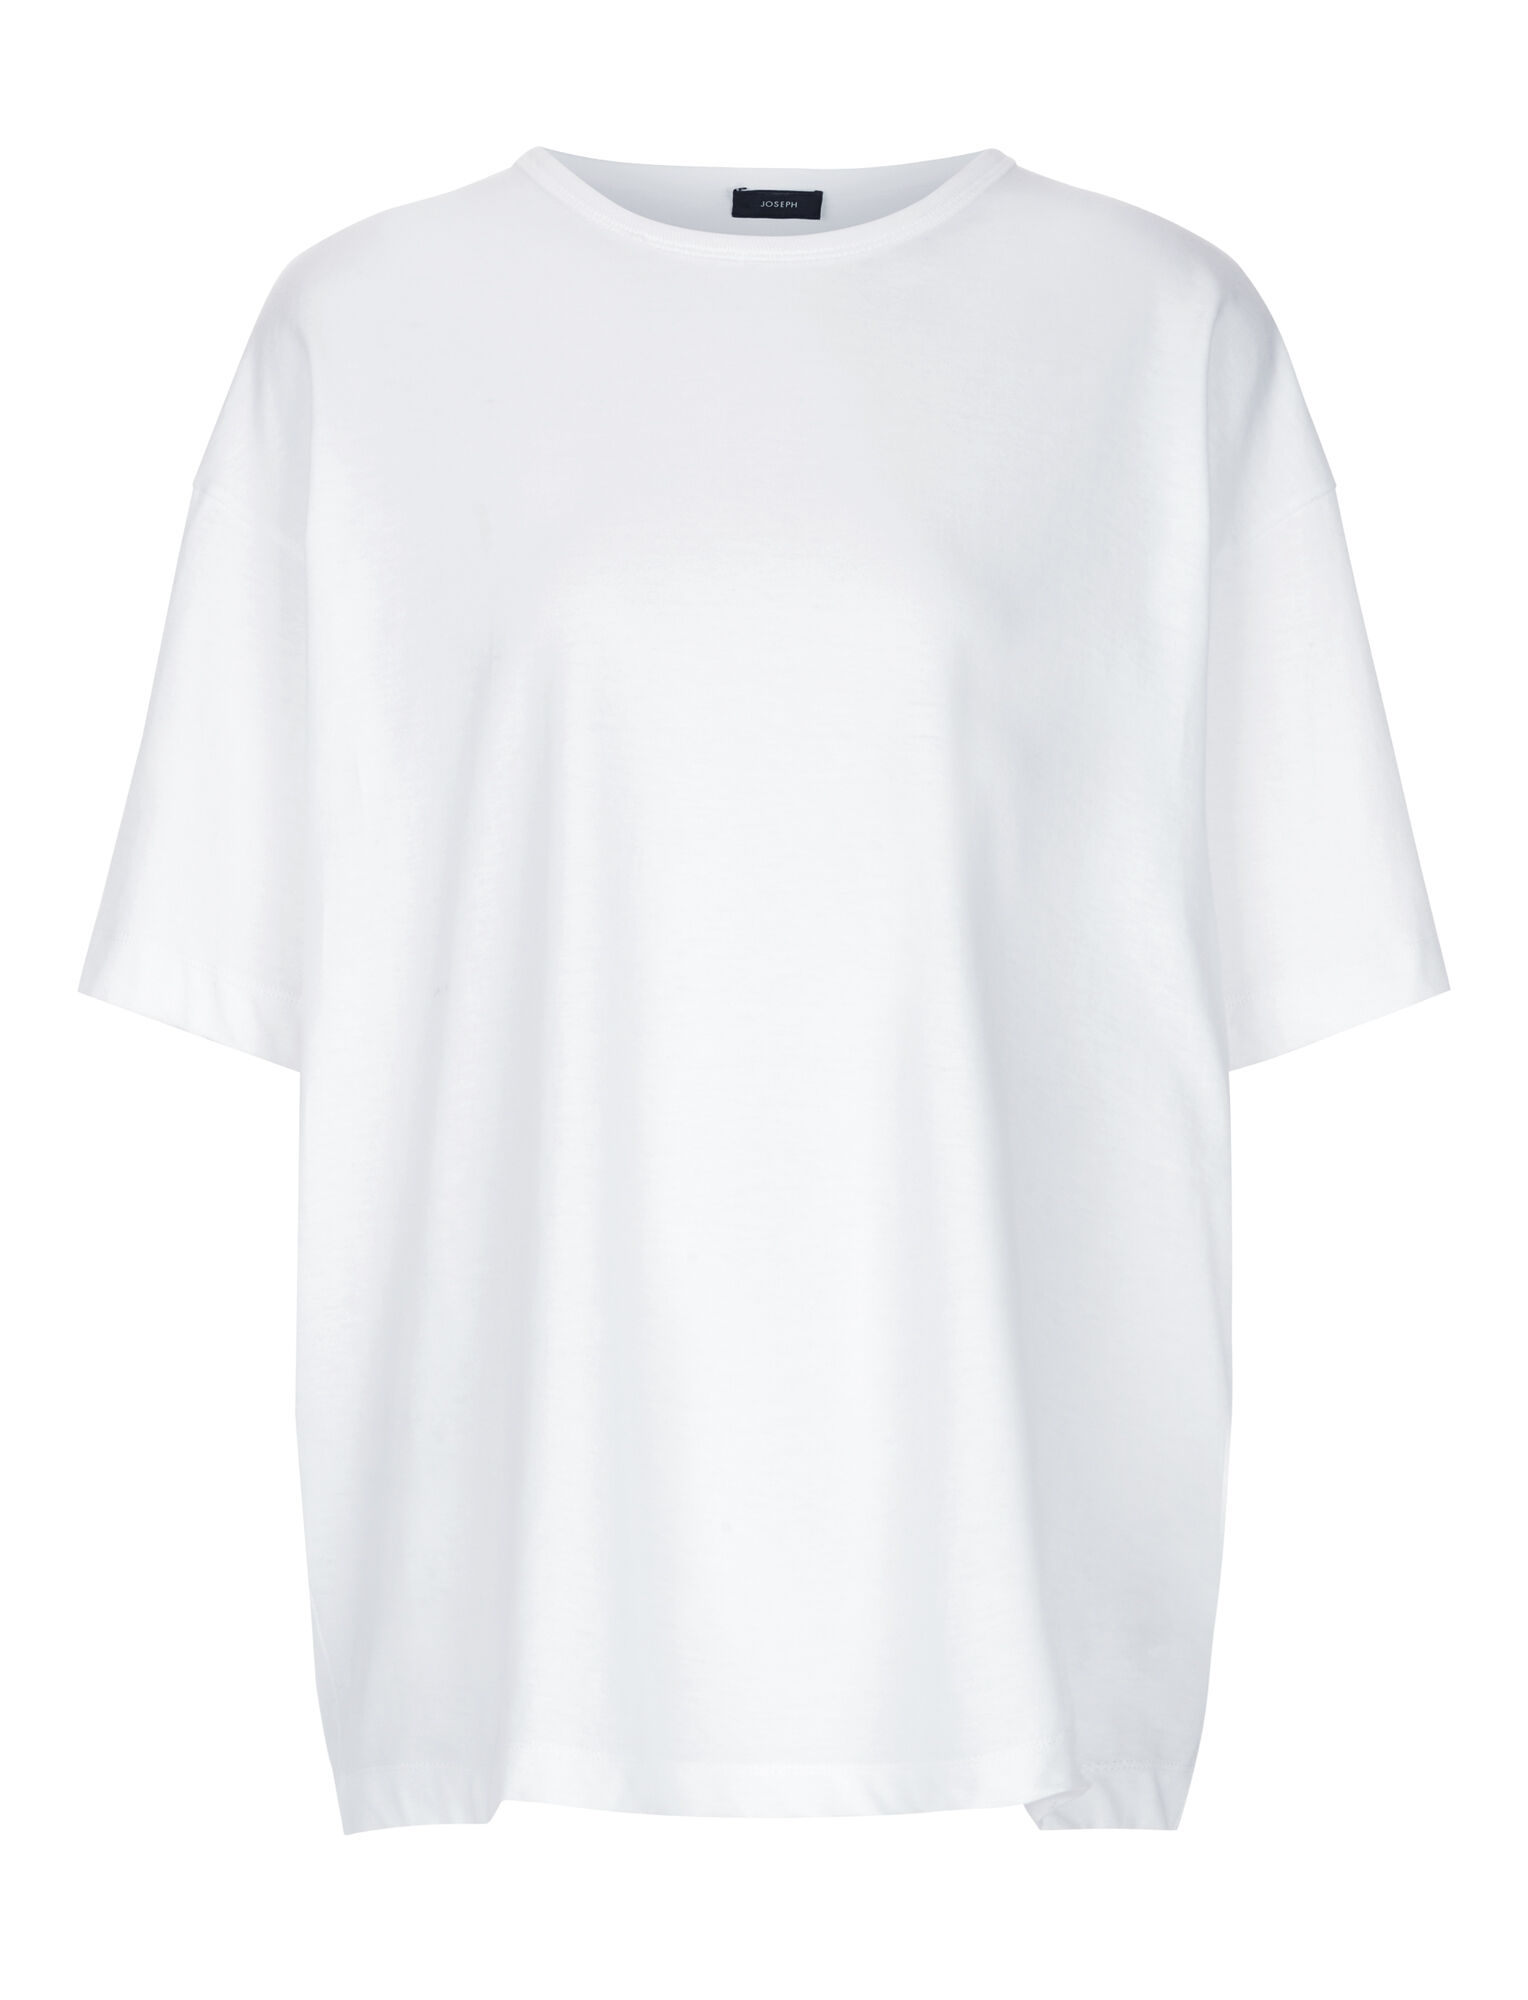 Joseph, Perfect Jersey Tee, in WHITE